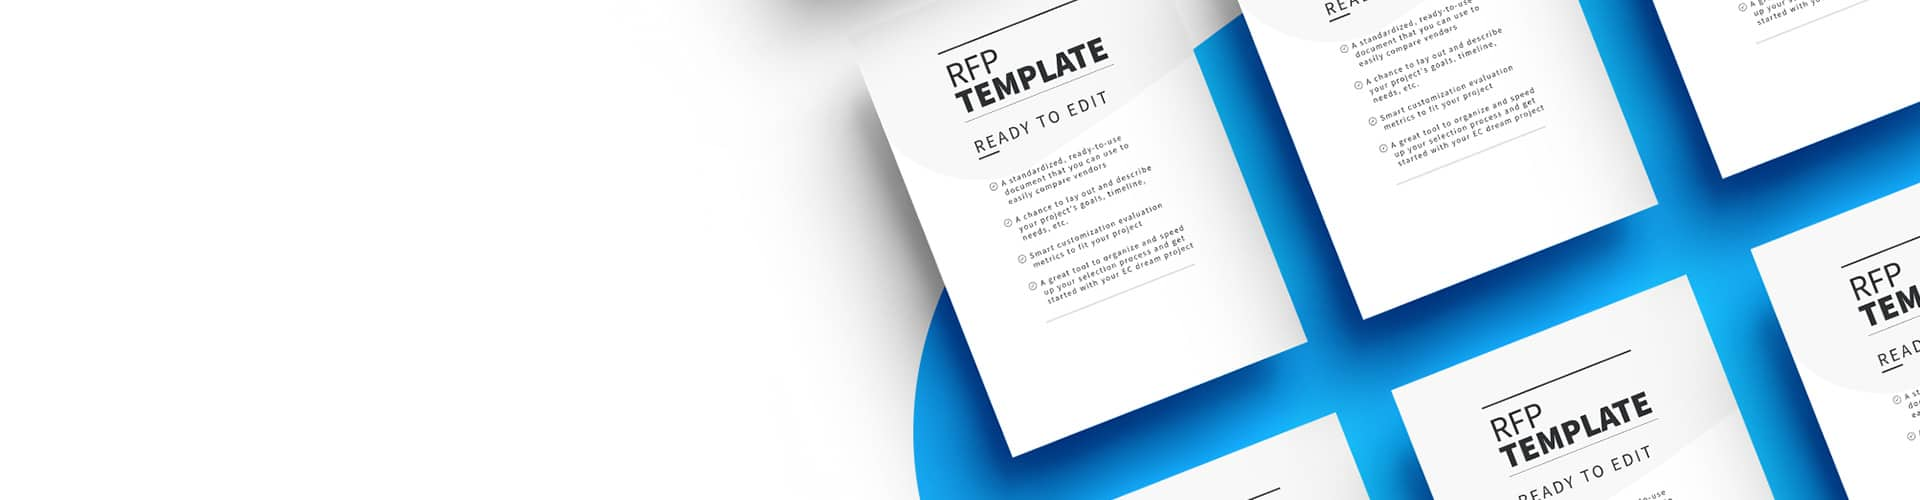 Employee Communication RFP Template